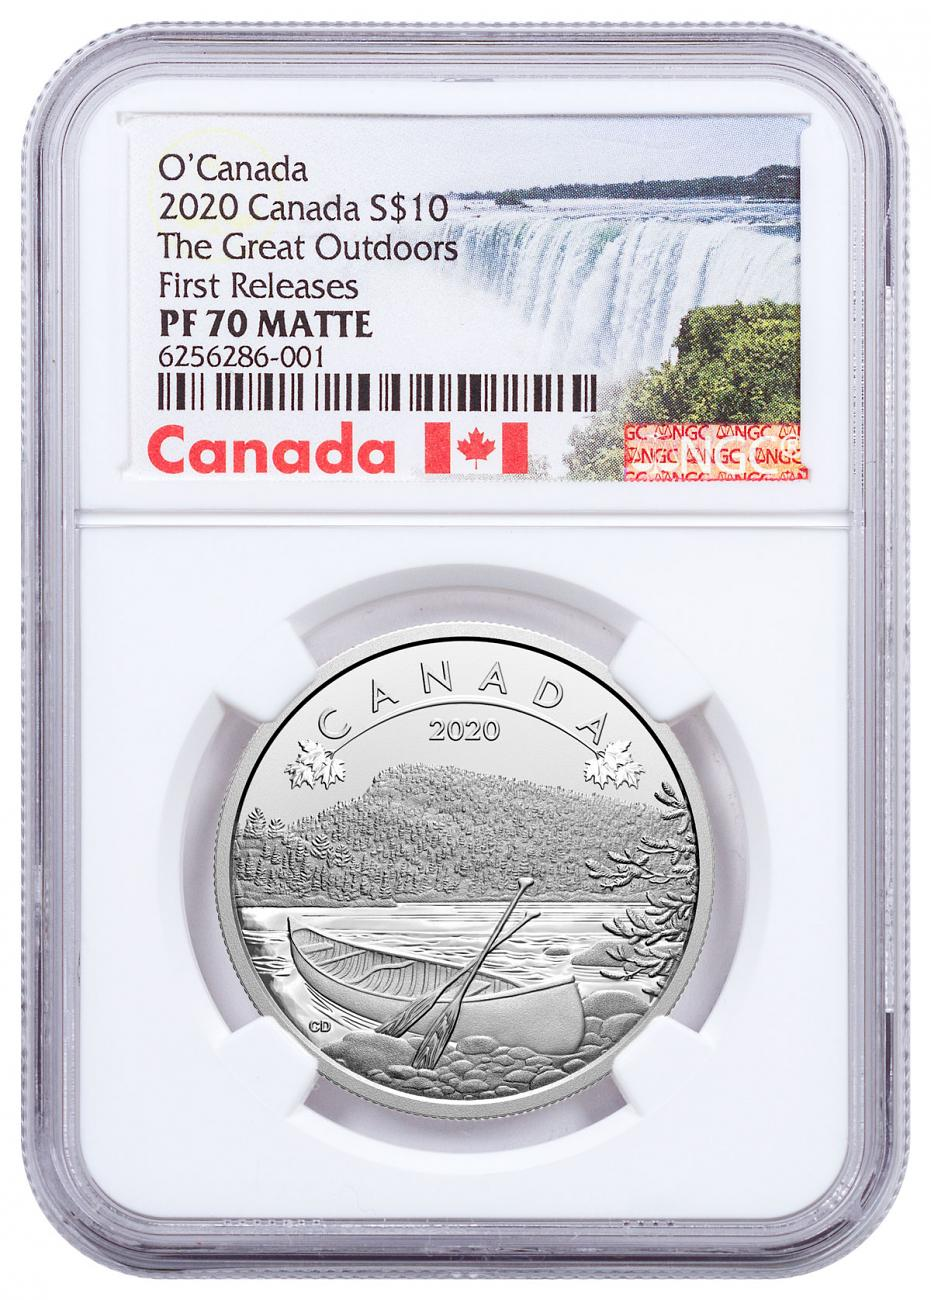 2020 Canada O Canada - Great Outdoors 1/2 oz Silver Matte Proof $10 Coin NGC PF70 Exclusive Canada Label